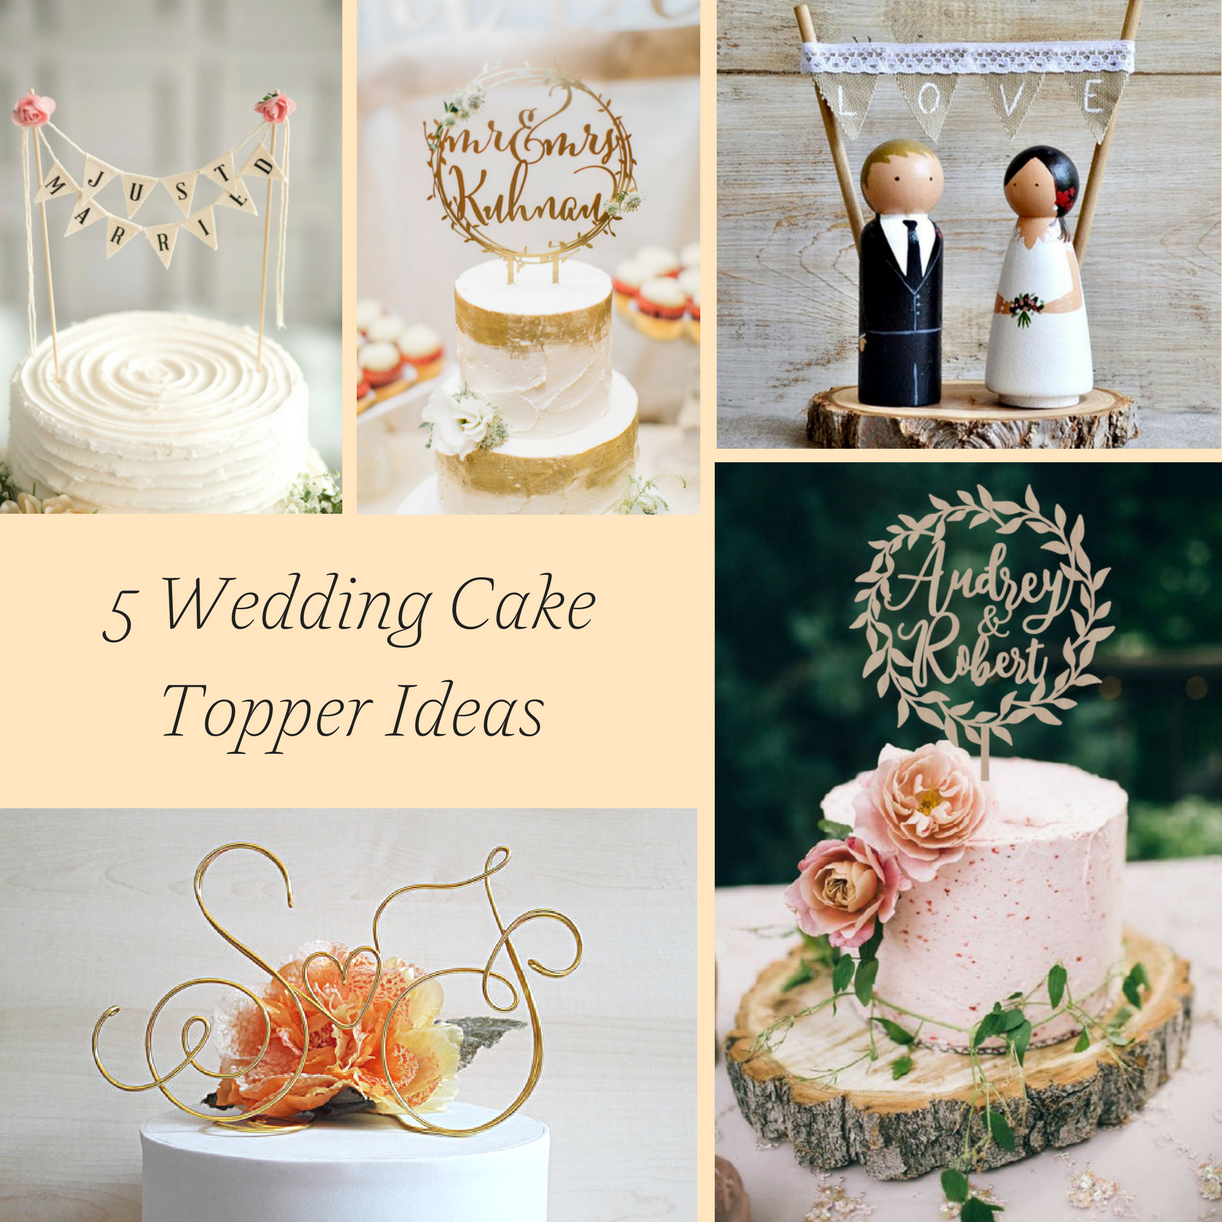 Fun Wedding Cake Ideas: 5 Wedding Cake Topper Ideas